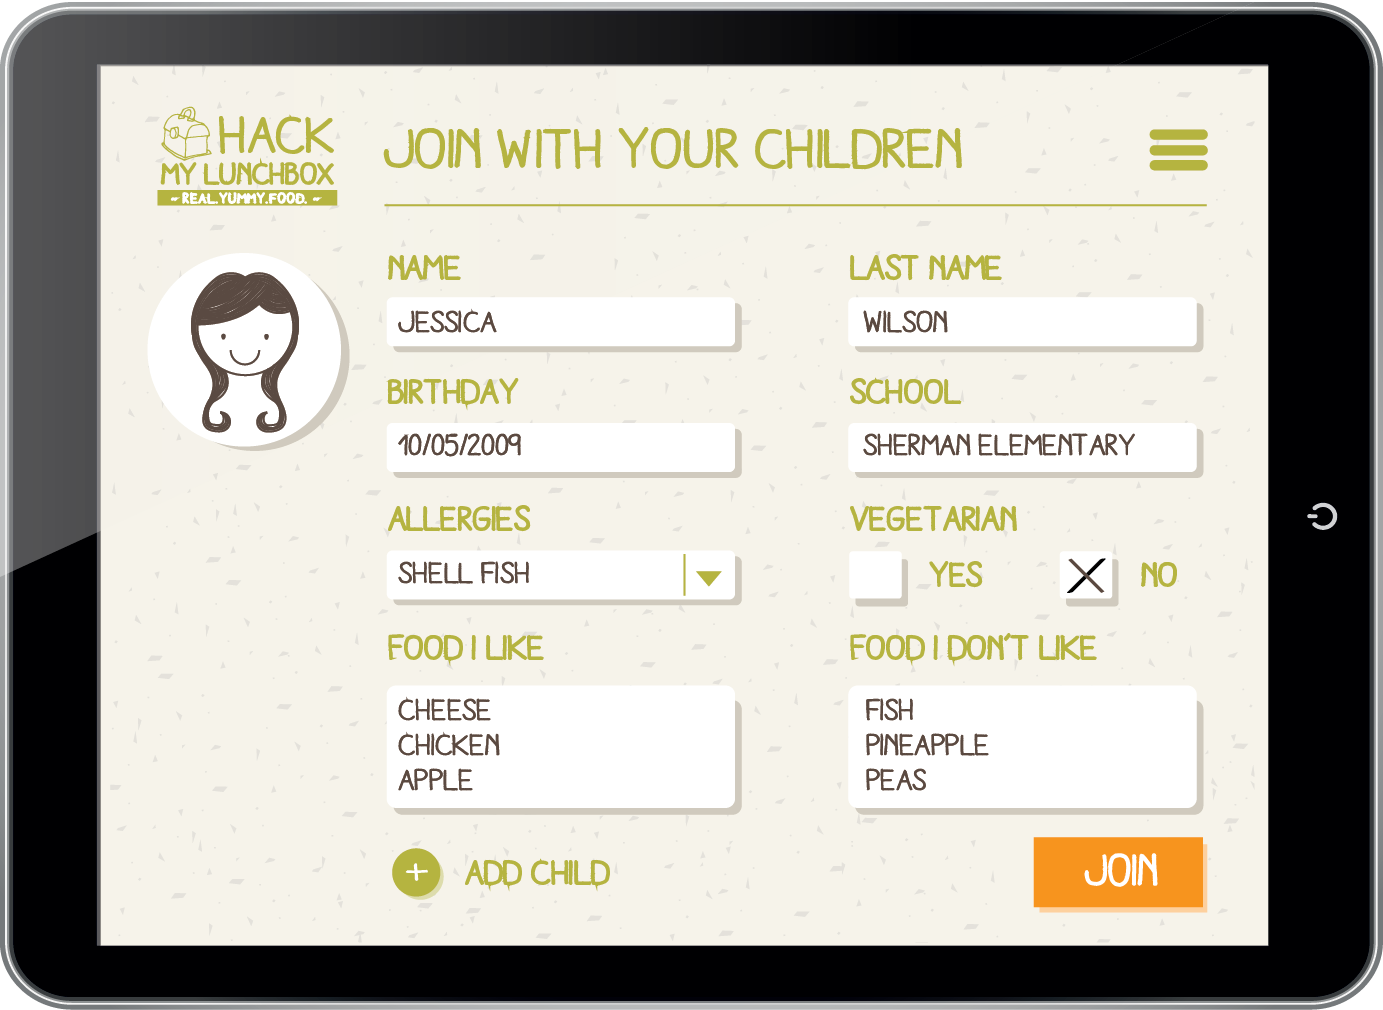 SIGN UP FORM - COMPLETED  Once the user has completed the child/children's profile, she/he clicks on the JOIN BUTTON, which becomes orange when the profile is submitted.